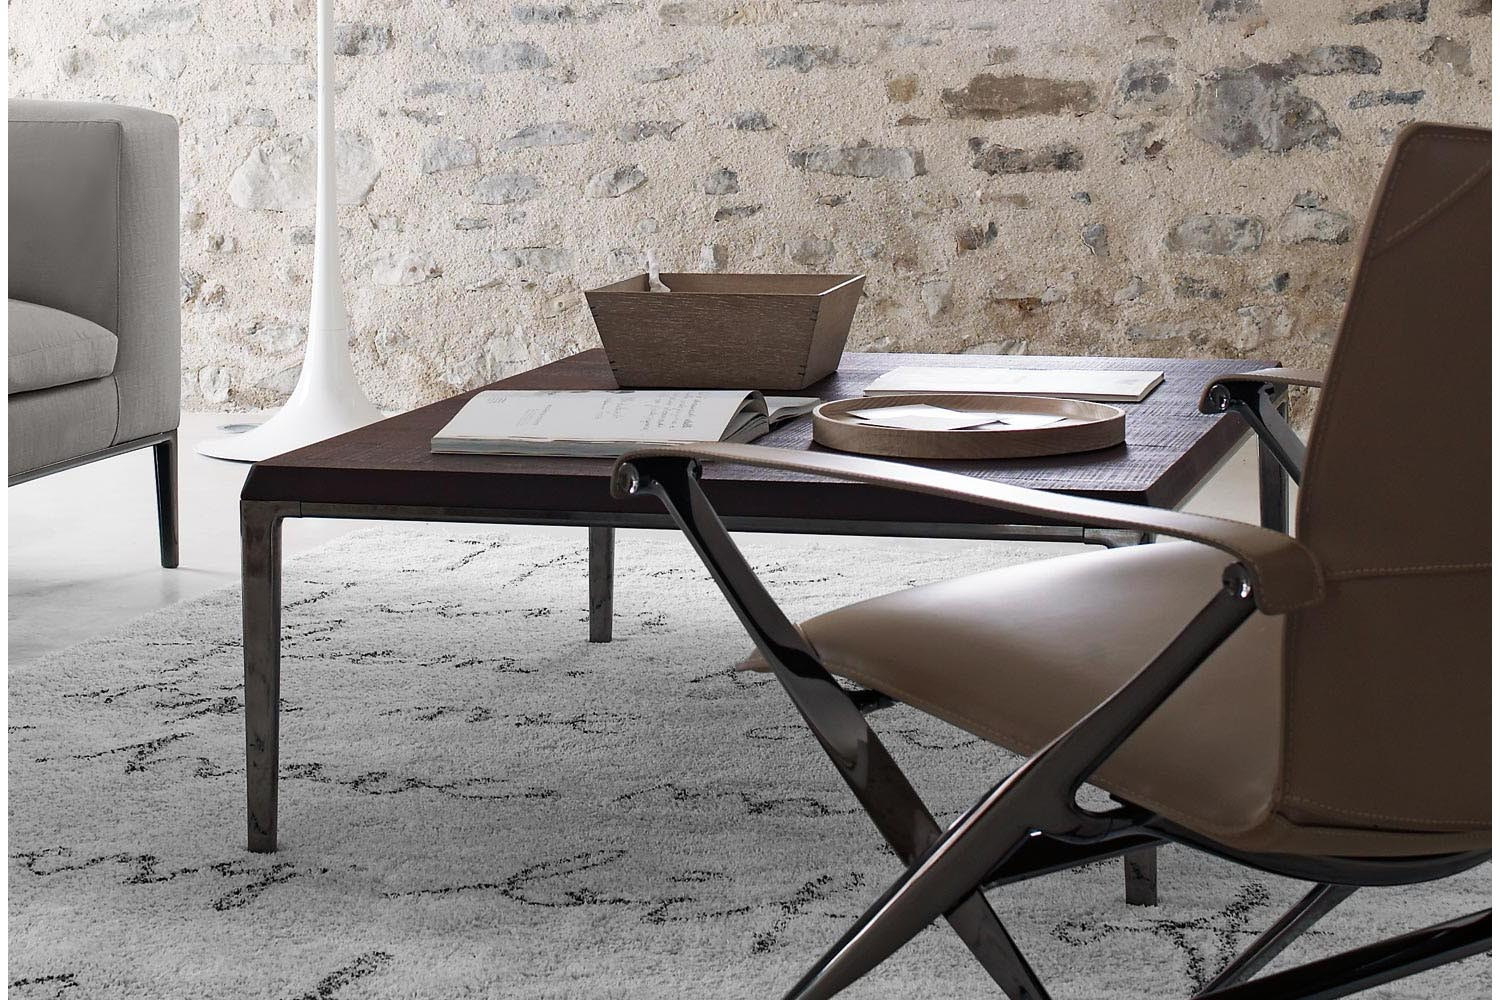 Michel Small Table by Antonio Citterio for B&B Italia